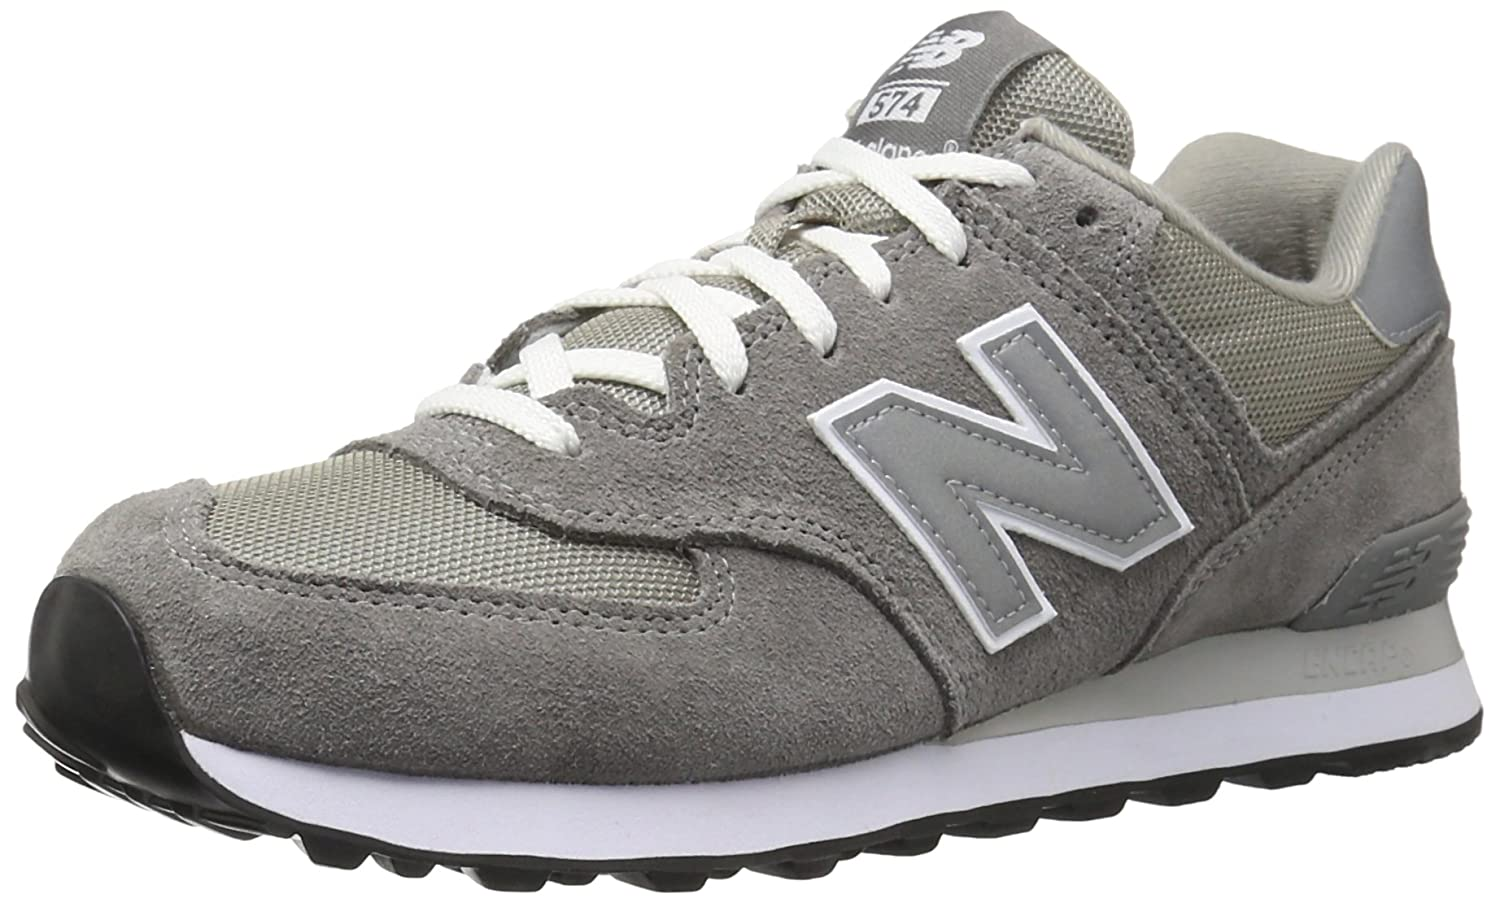 detailed look afcb7 92426 New Balance 574, Men's Trainers